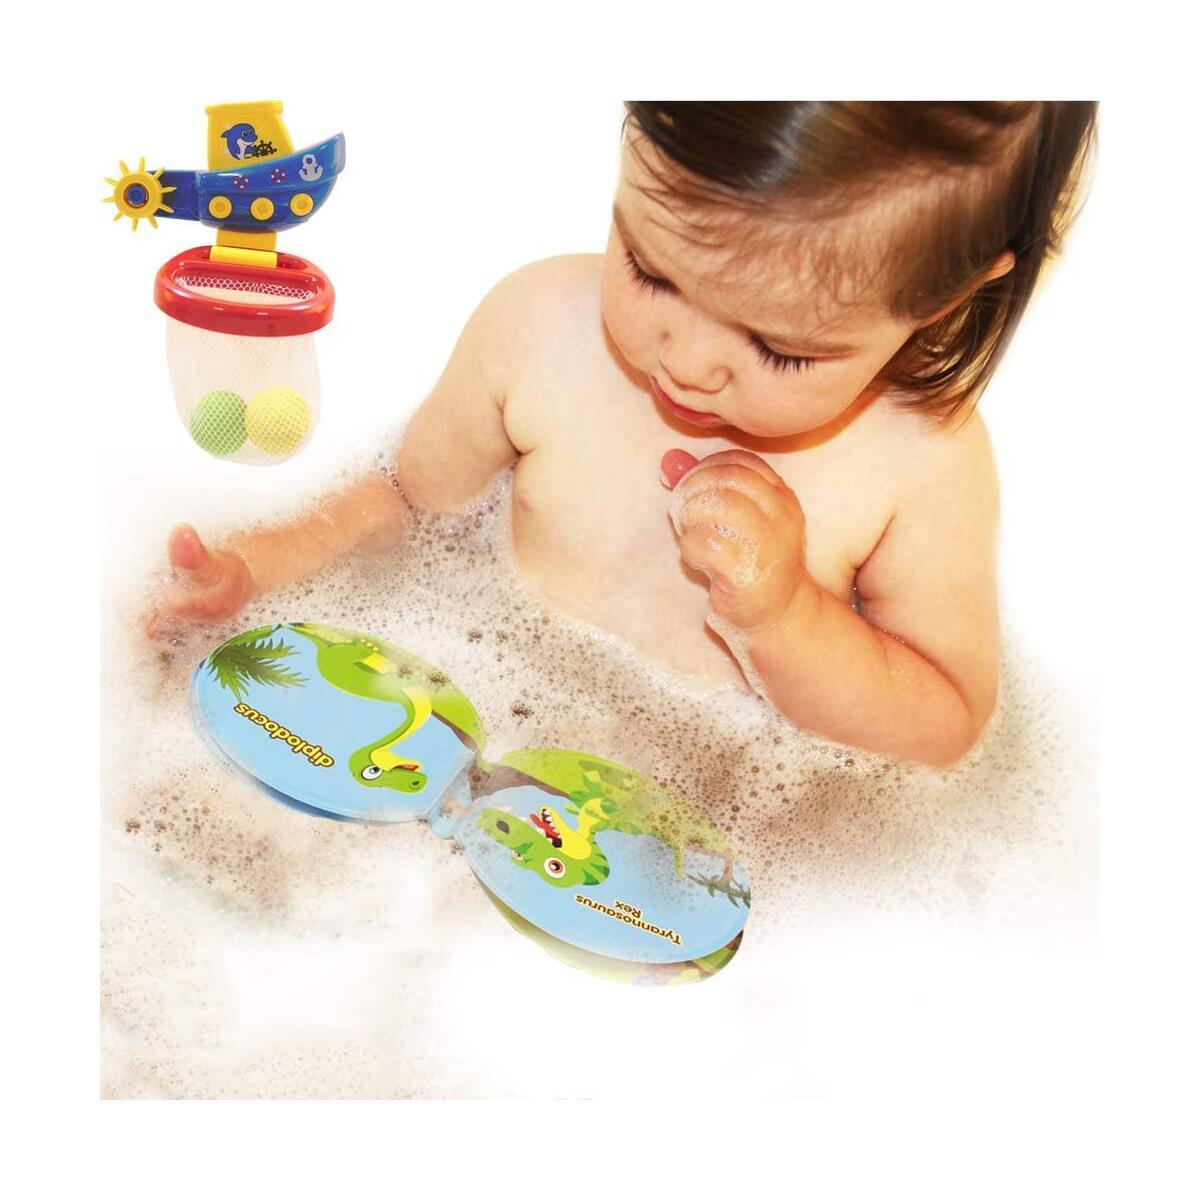 Baby Bath Toy Toddler Basketball Hoop Floating Baby Bath Books for Kids Bathroom Shooting Game Slam Dunk Bathtub with Strong Suction Cup,Toddler Learning Bath Toys for Kid Boy Girl Child Gift